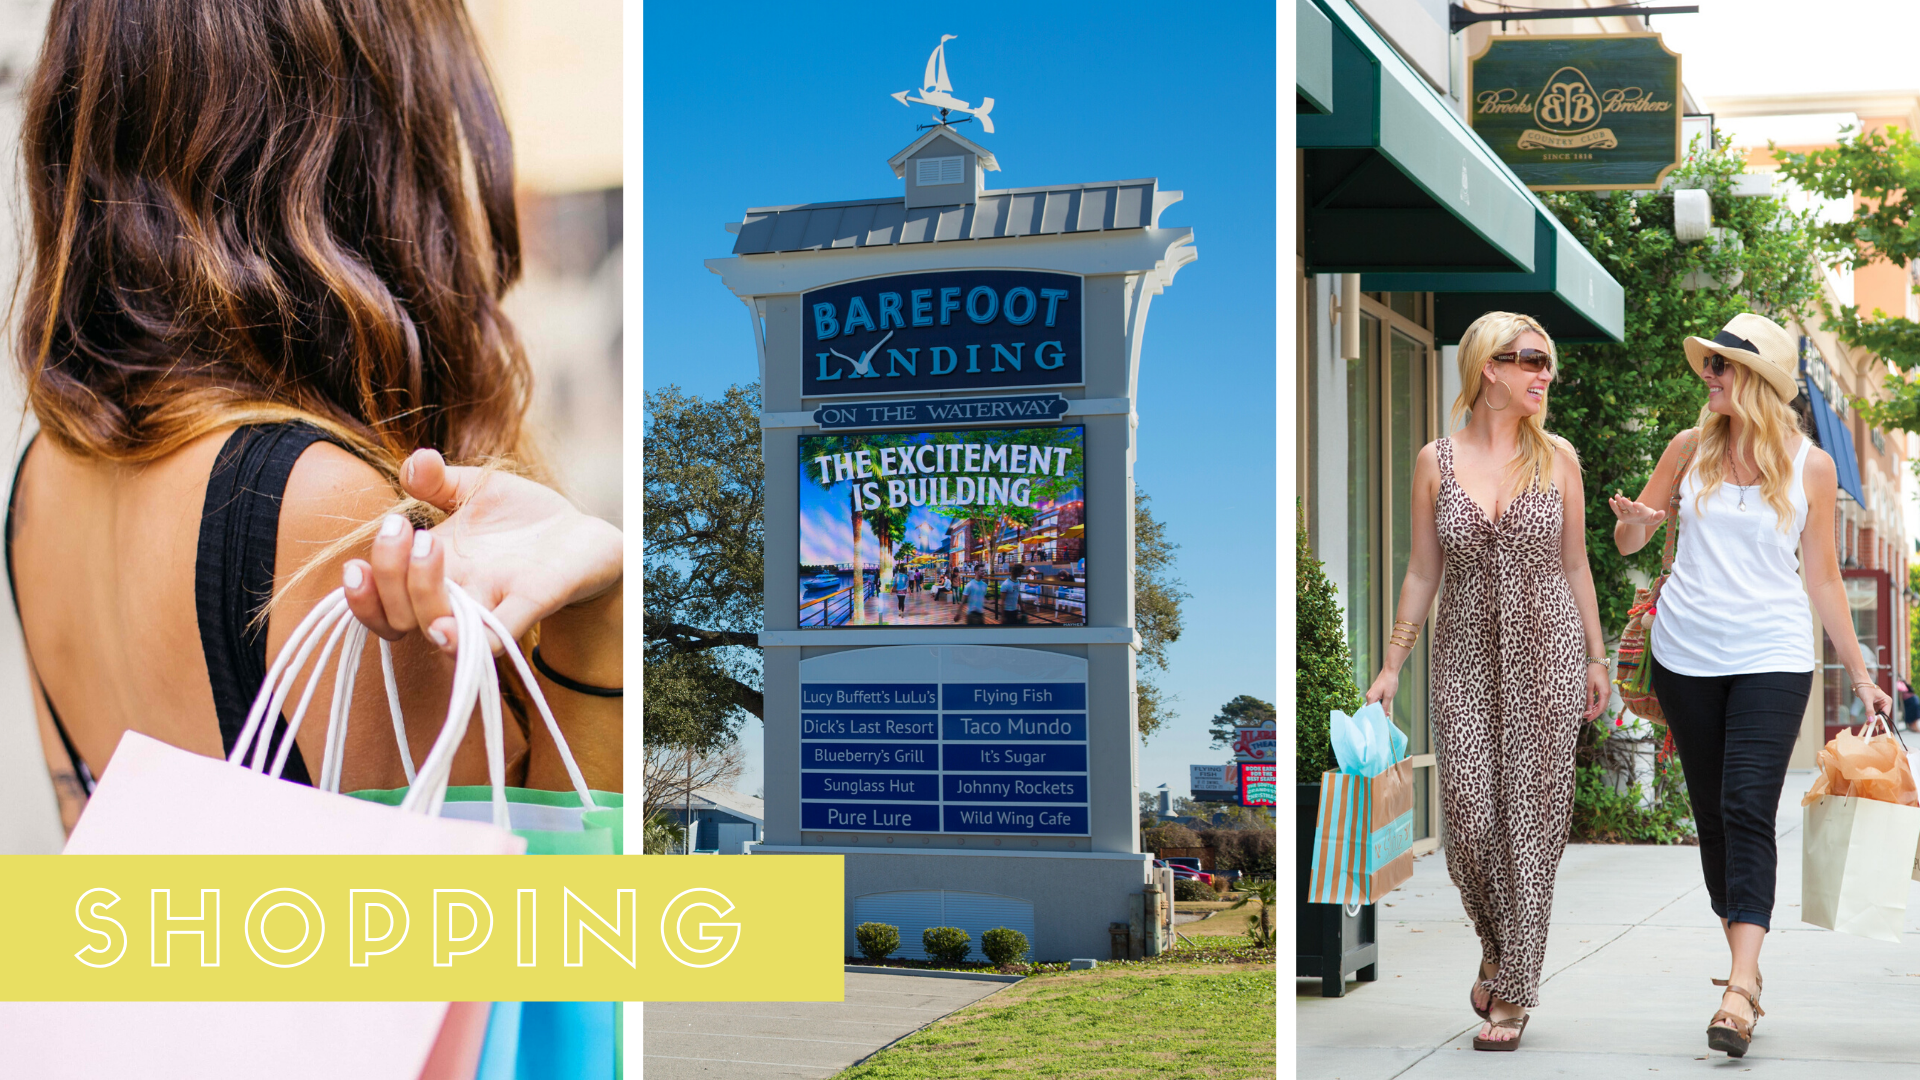 Collage featuring women shopping and Barefoot Landing